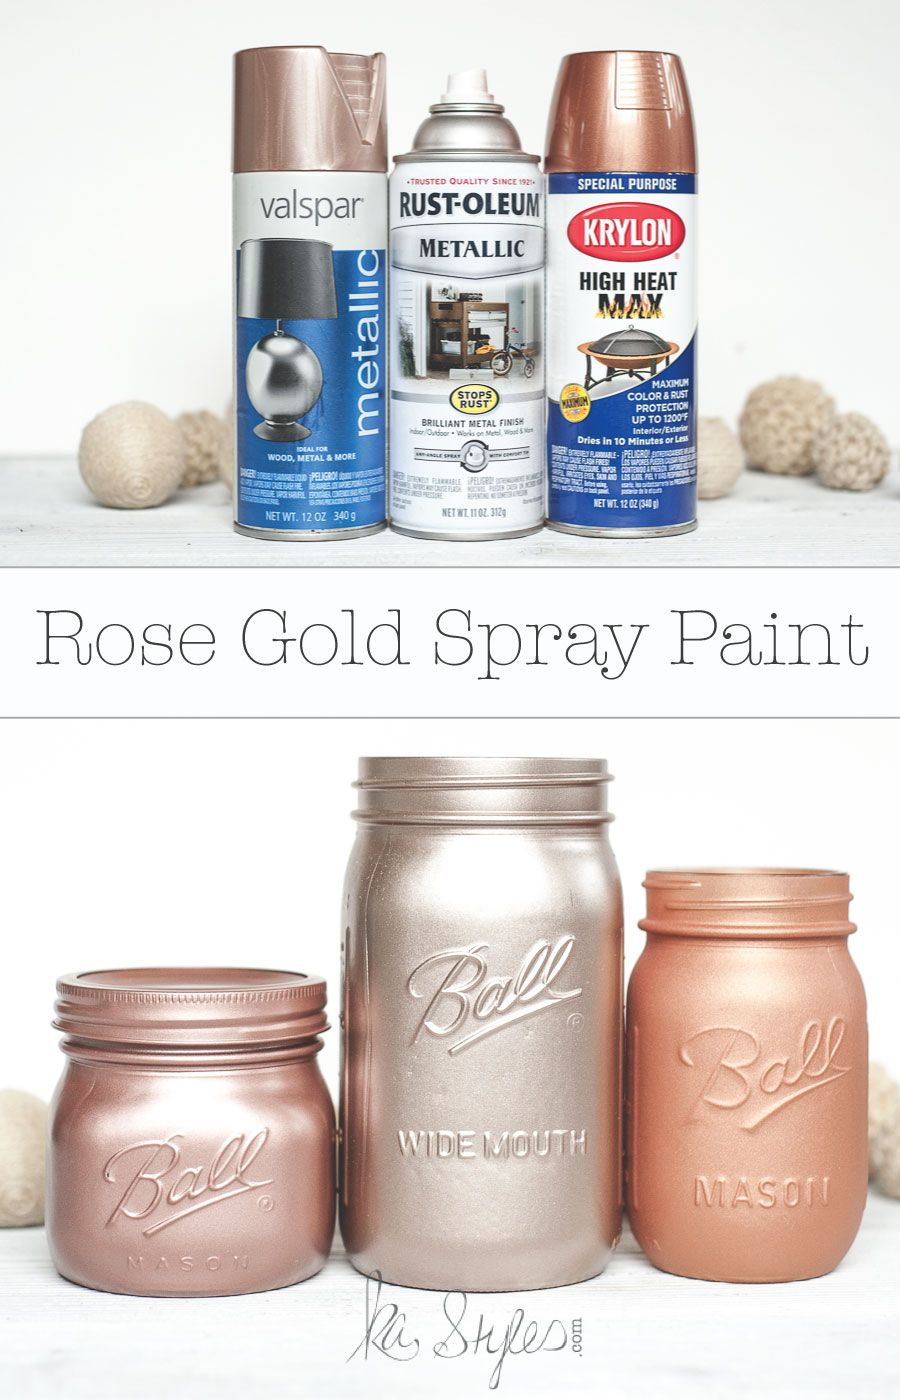 Rose Gold Spray Paint | Mason Jars! | DIY Home Decor